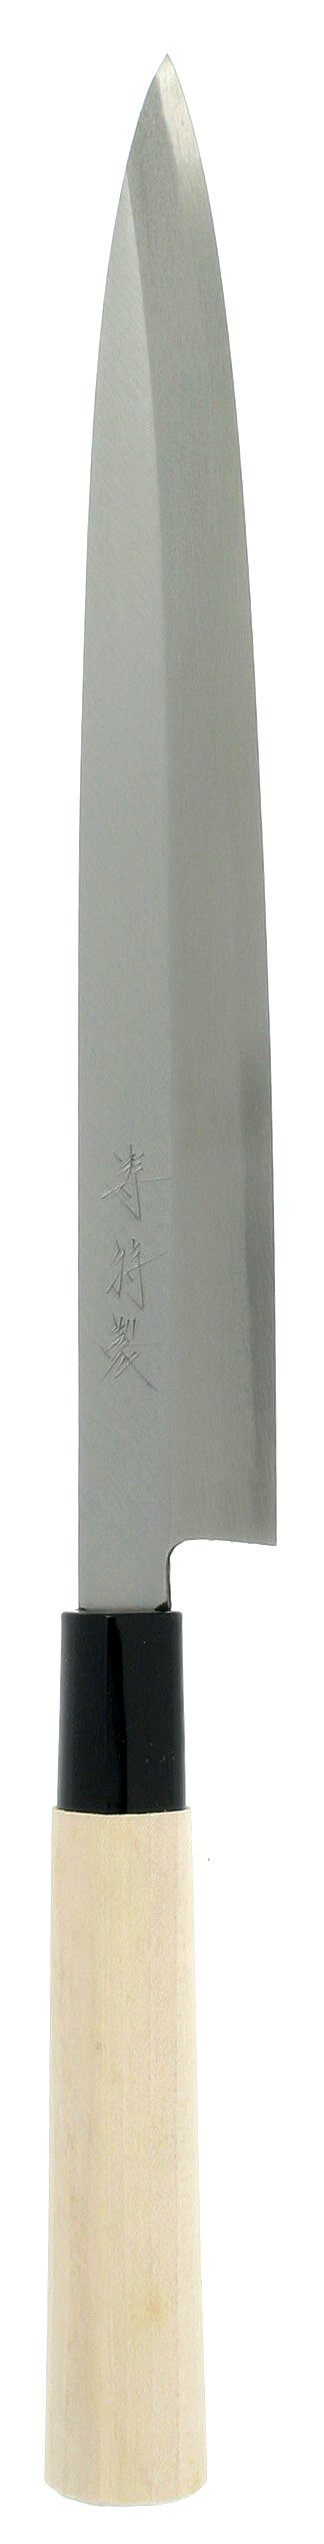 Kotobuki High-Carbon SK-5 Japanese Yanagi Sashimi Knife, 240mm by Kotobuki